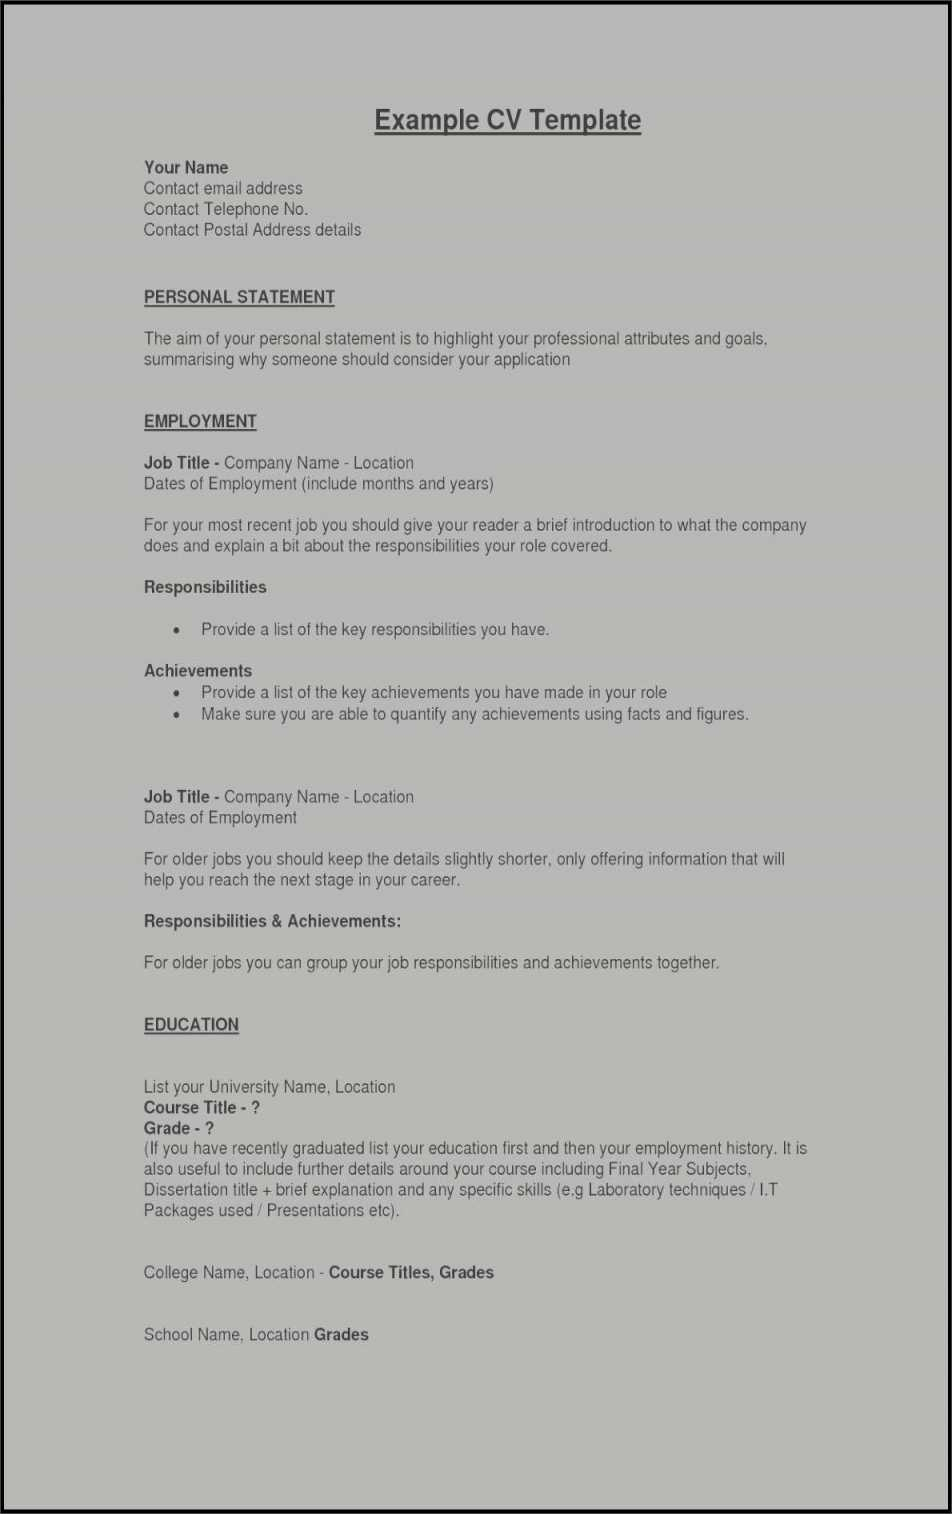 Resume for Service Industry - How to Make Resume Template Hospitality Free Resume Templates